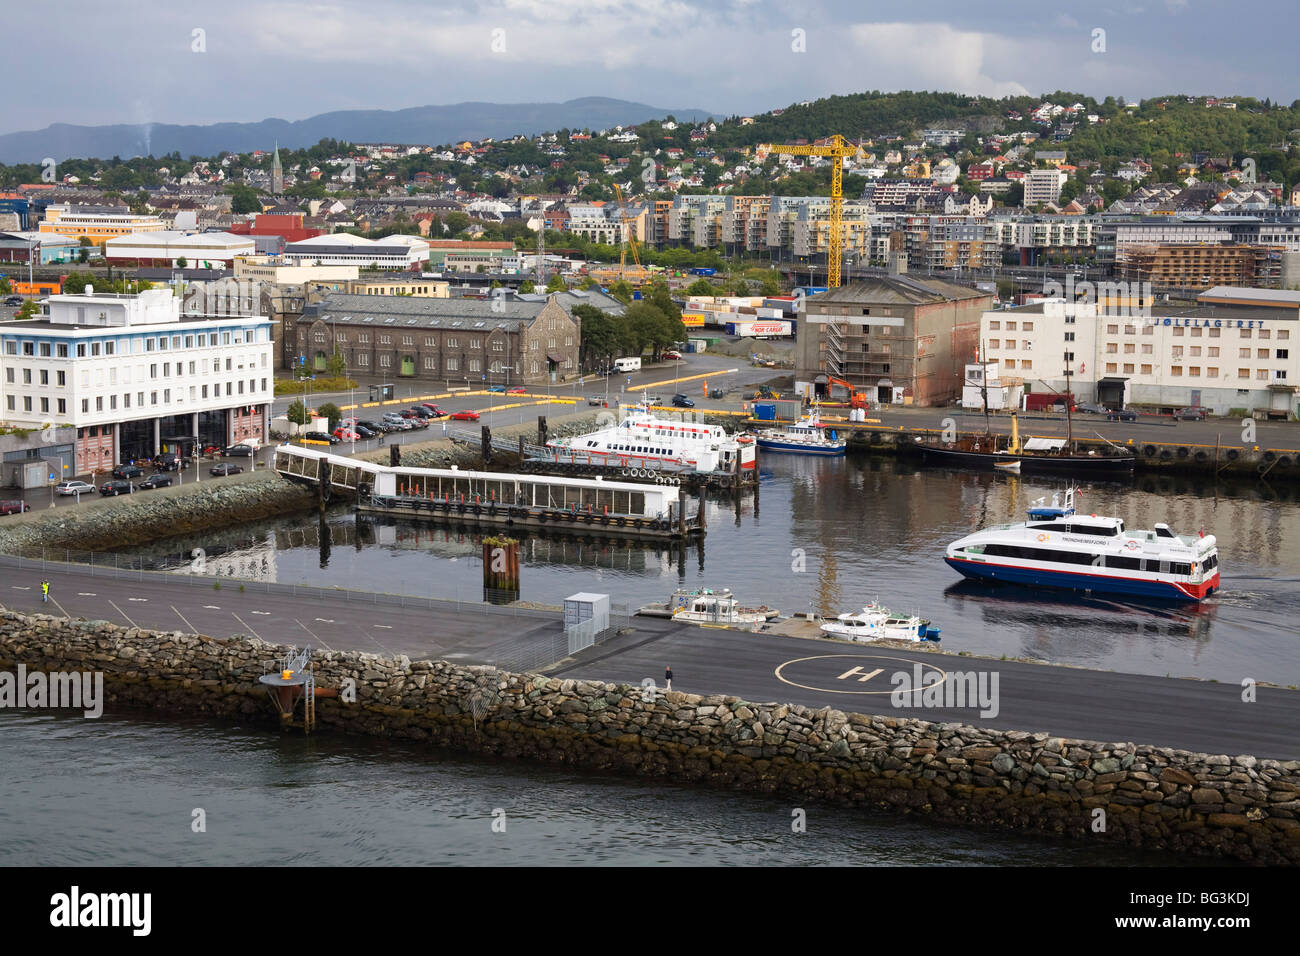 Docks in the Brattora District, Trondheim City, Nord-Trondelag Region, Norway, Scandinavia, Europe - Stock Image